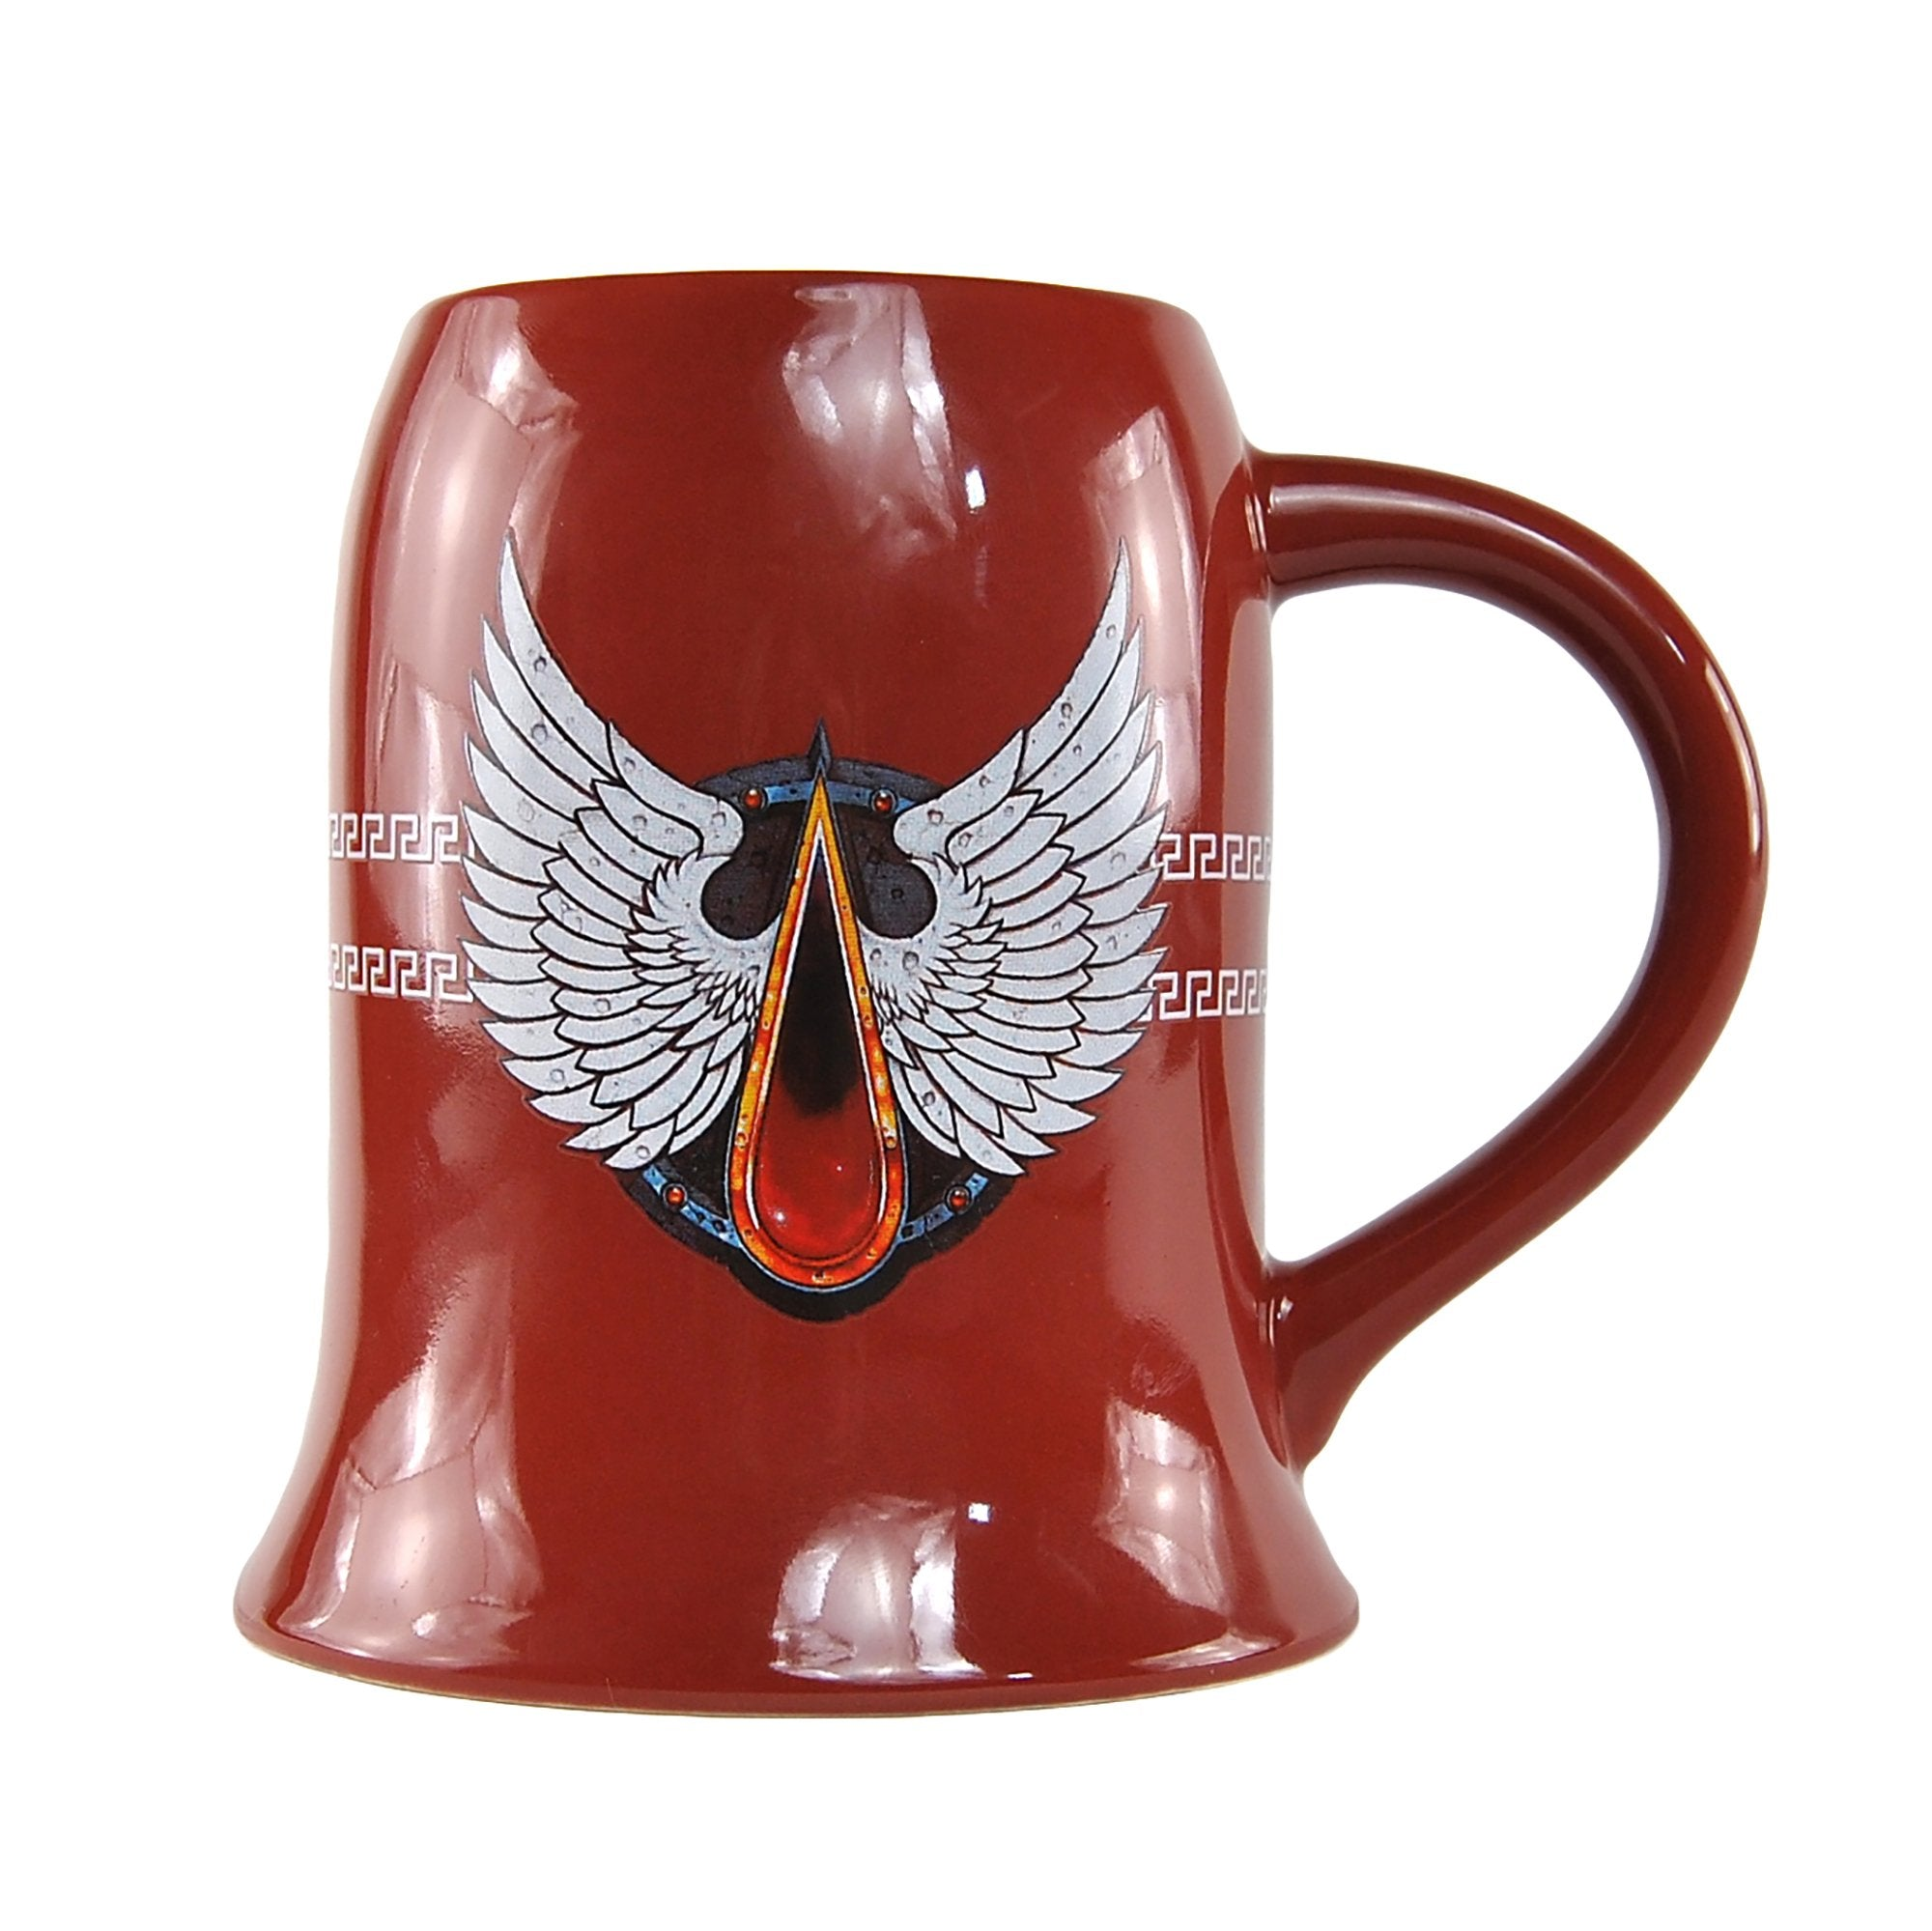 Warhammer 40,000 Tankard Mug - Blood Angels - Half Moon Bay US